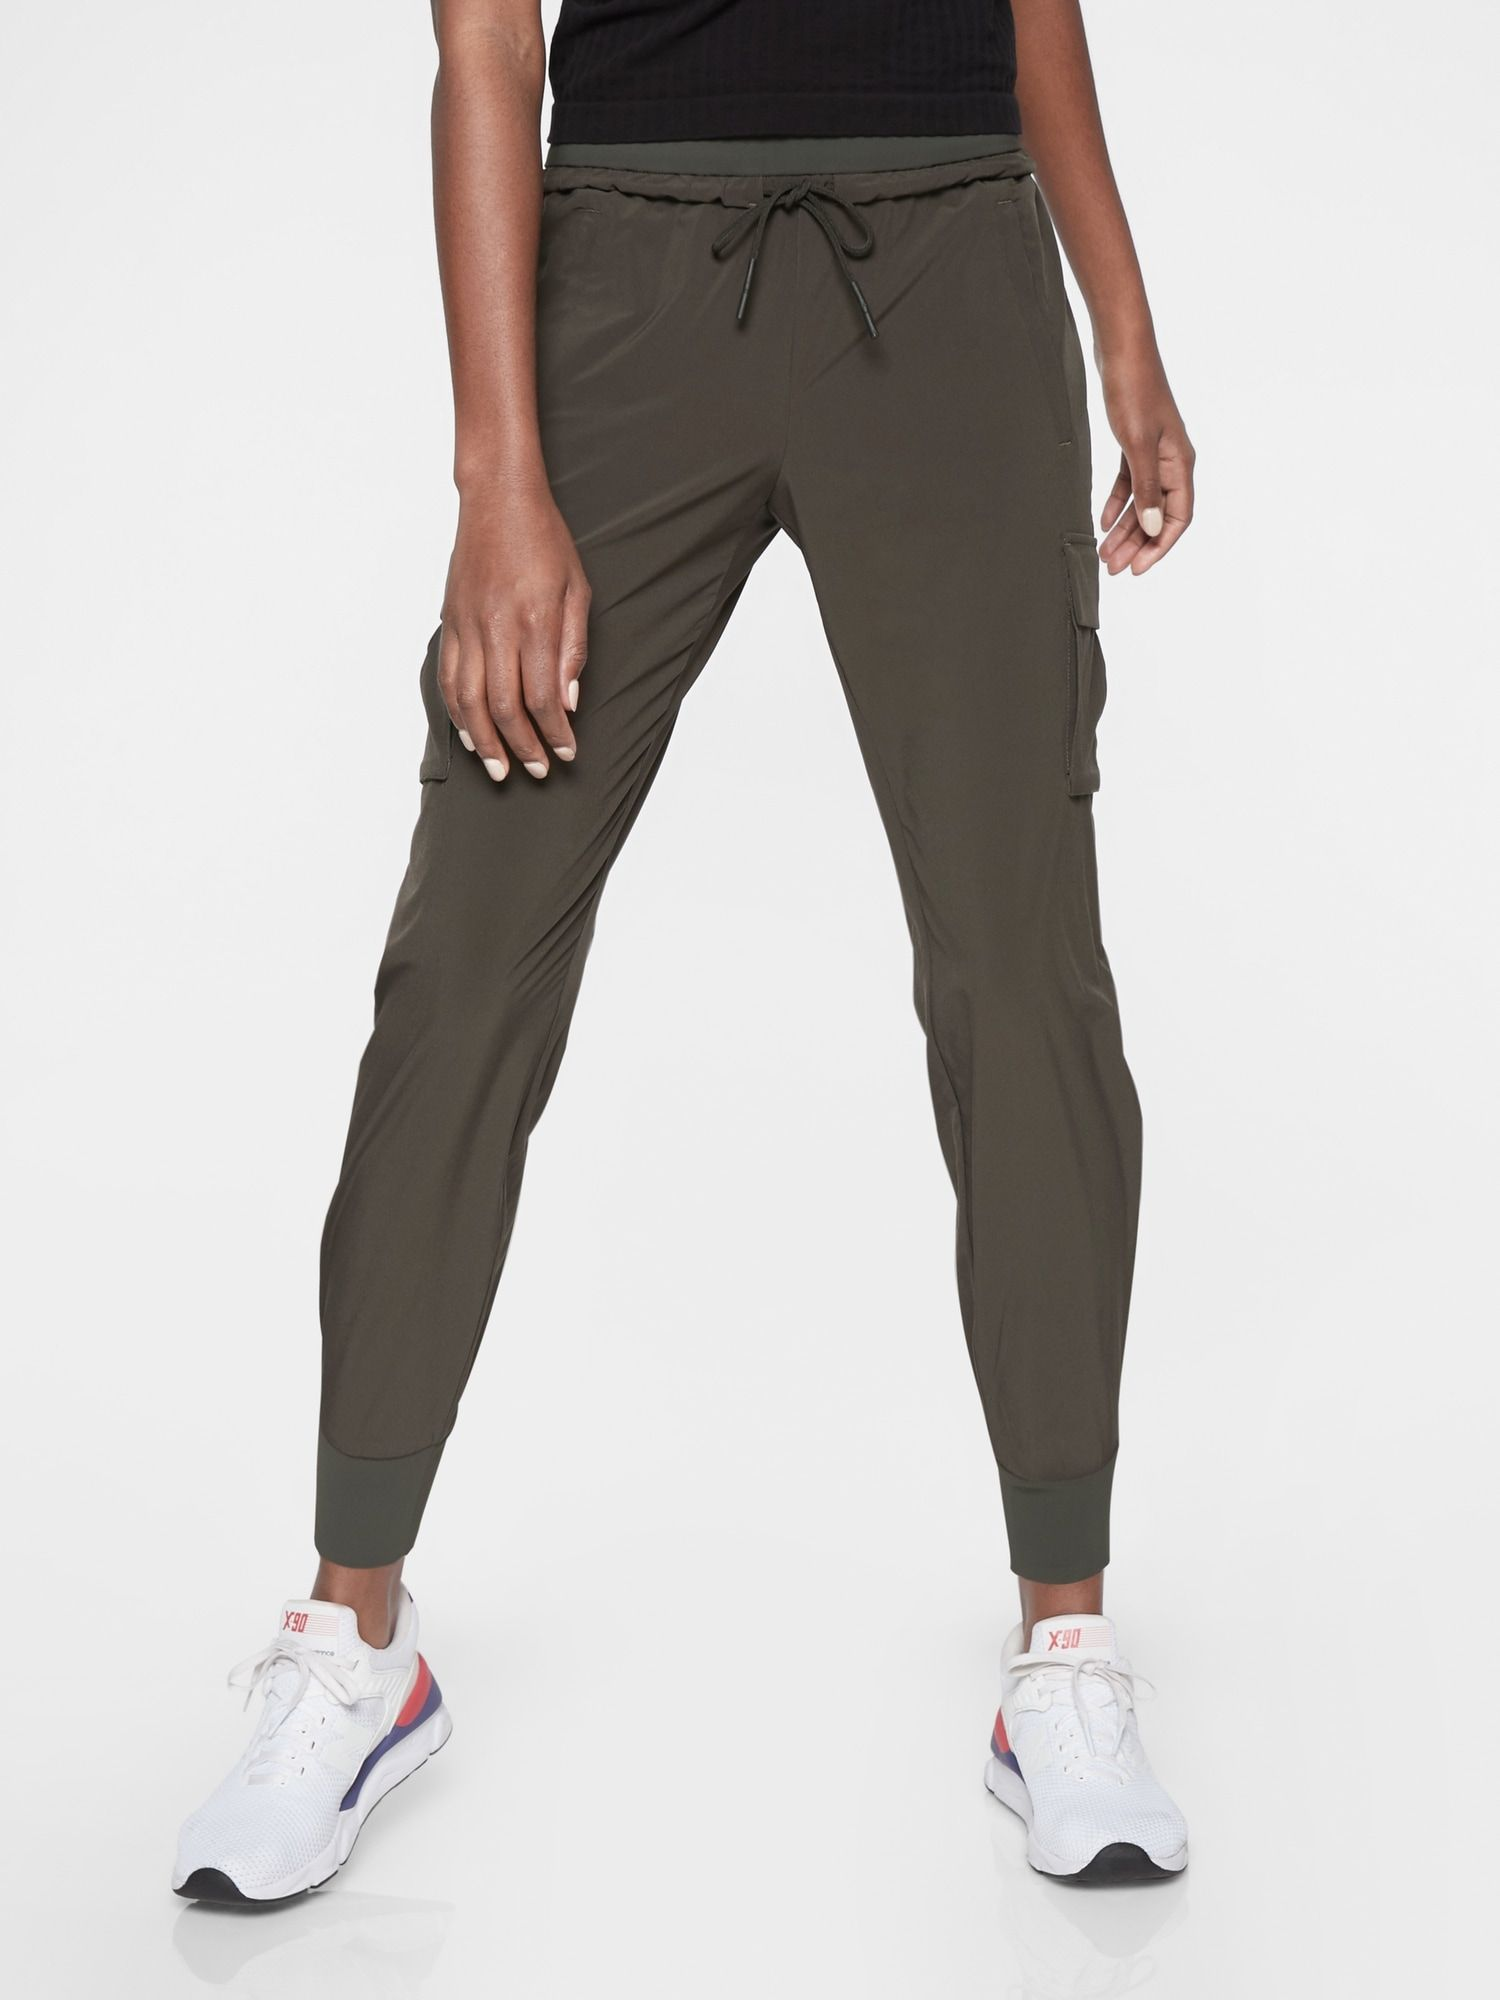 833afbf56b Sutton Jogger in 2019 | threads | Joggers womens, Travel pants, Joggers